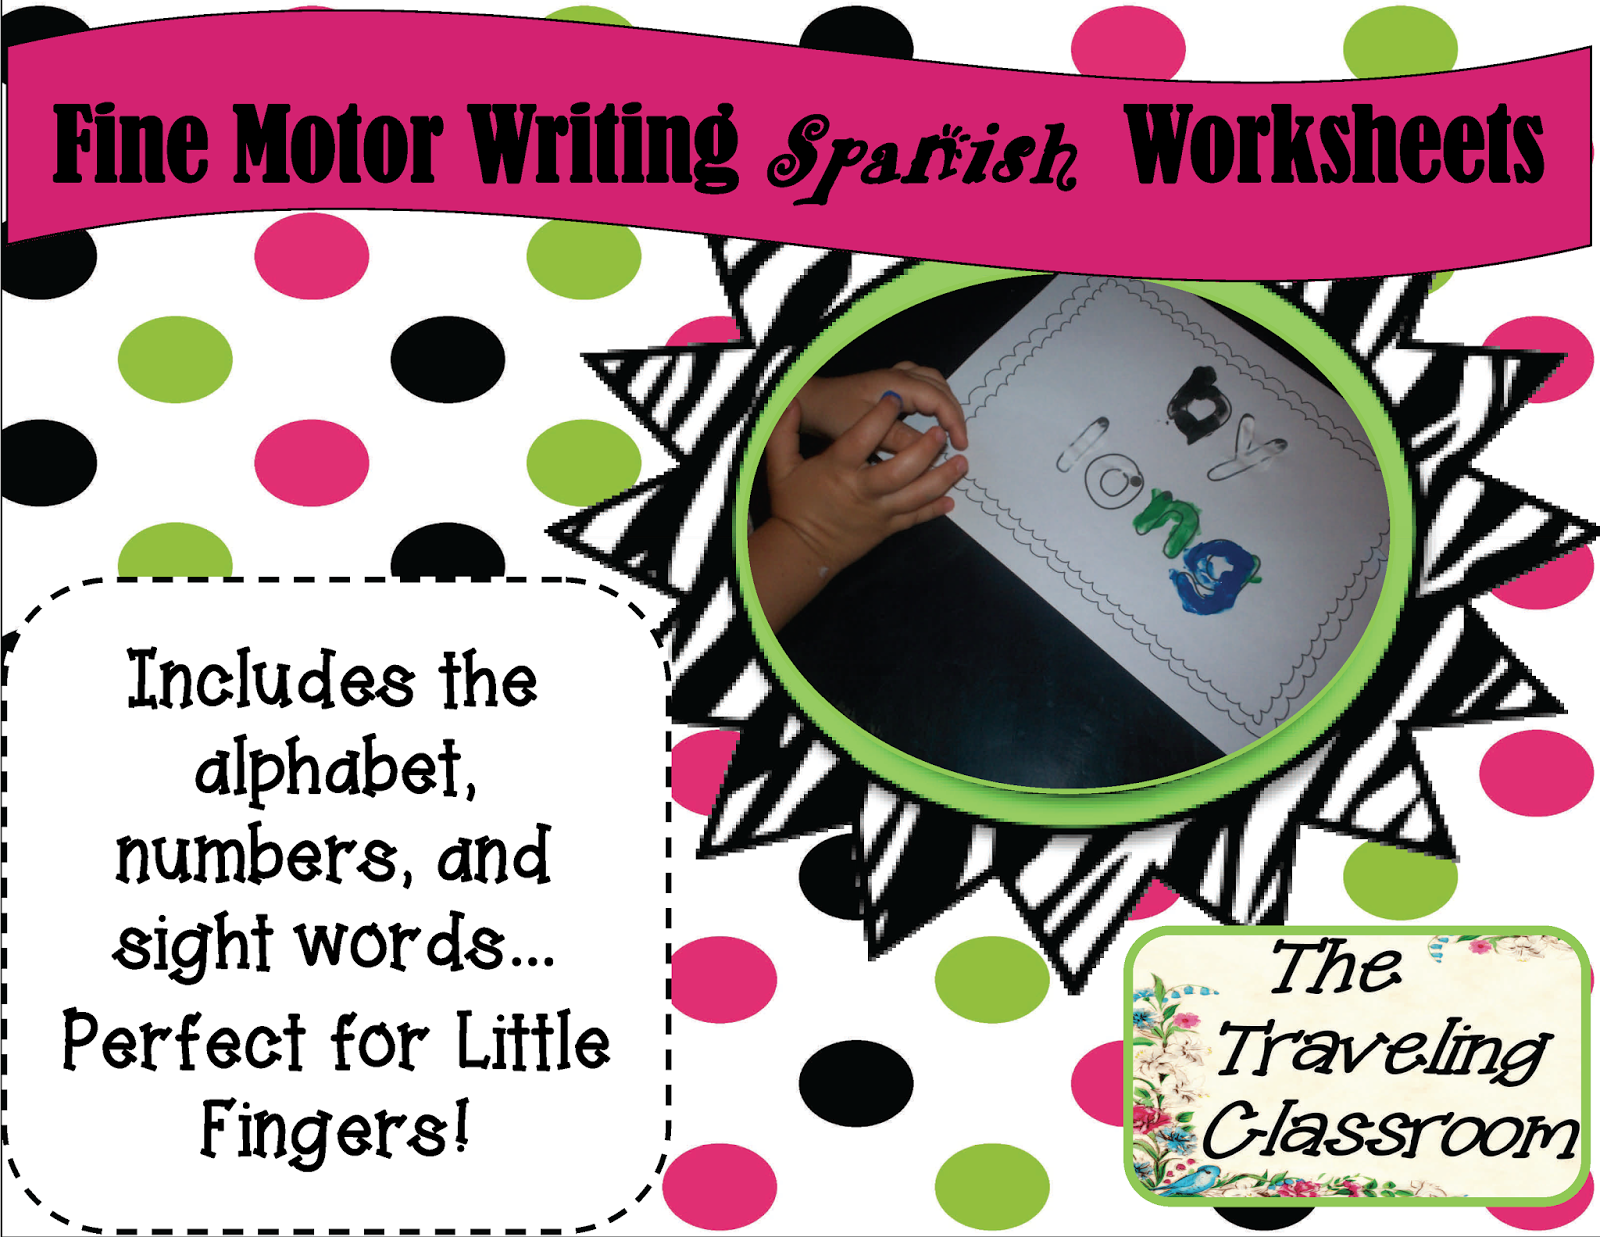 http://www.teacherspayteachers.com/Product/Freebie-Spanish-Fine-Motor-Worksheets-for-Activity-Centers-More-922557